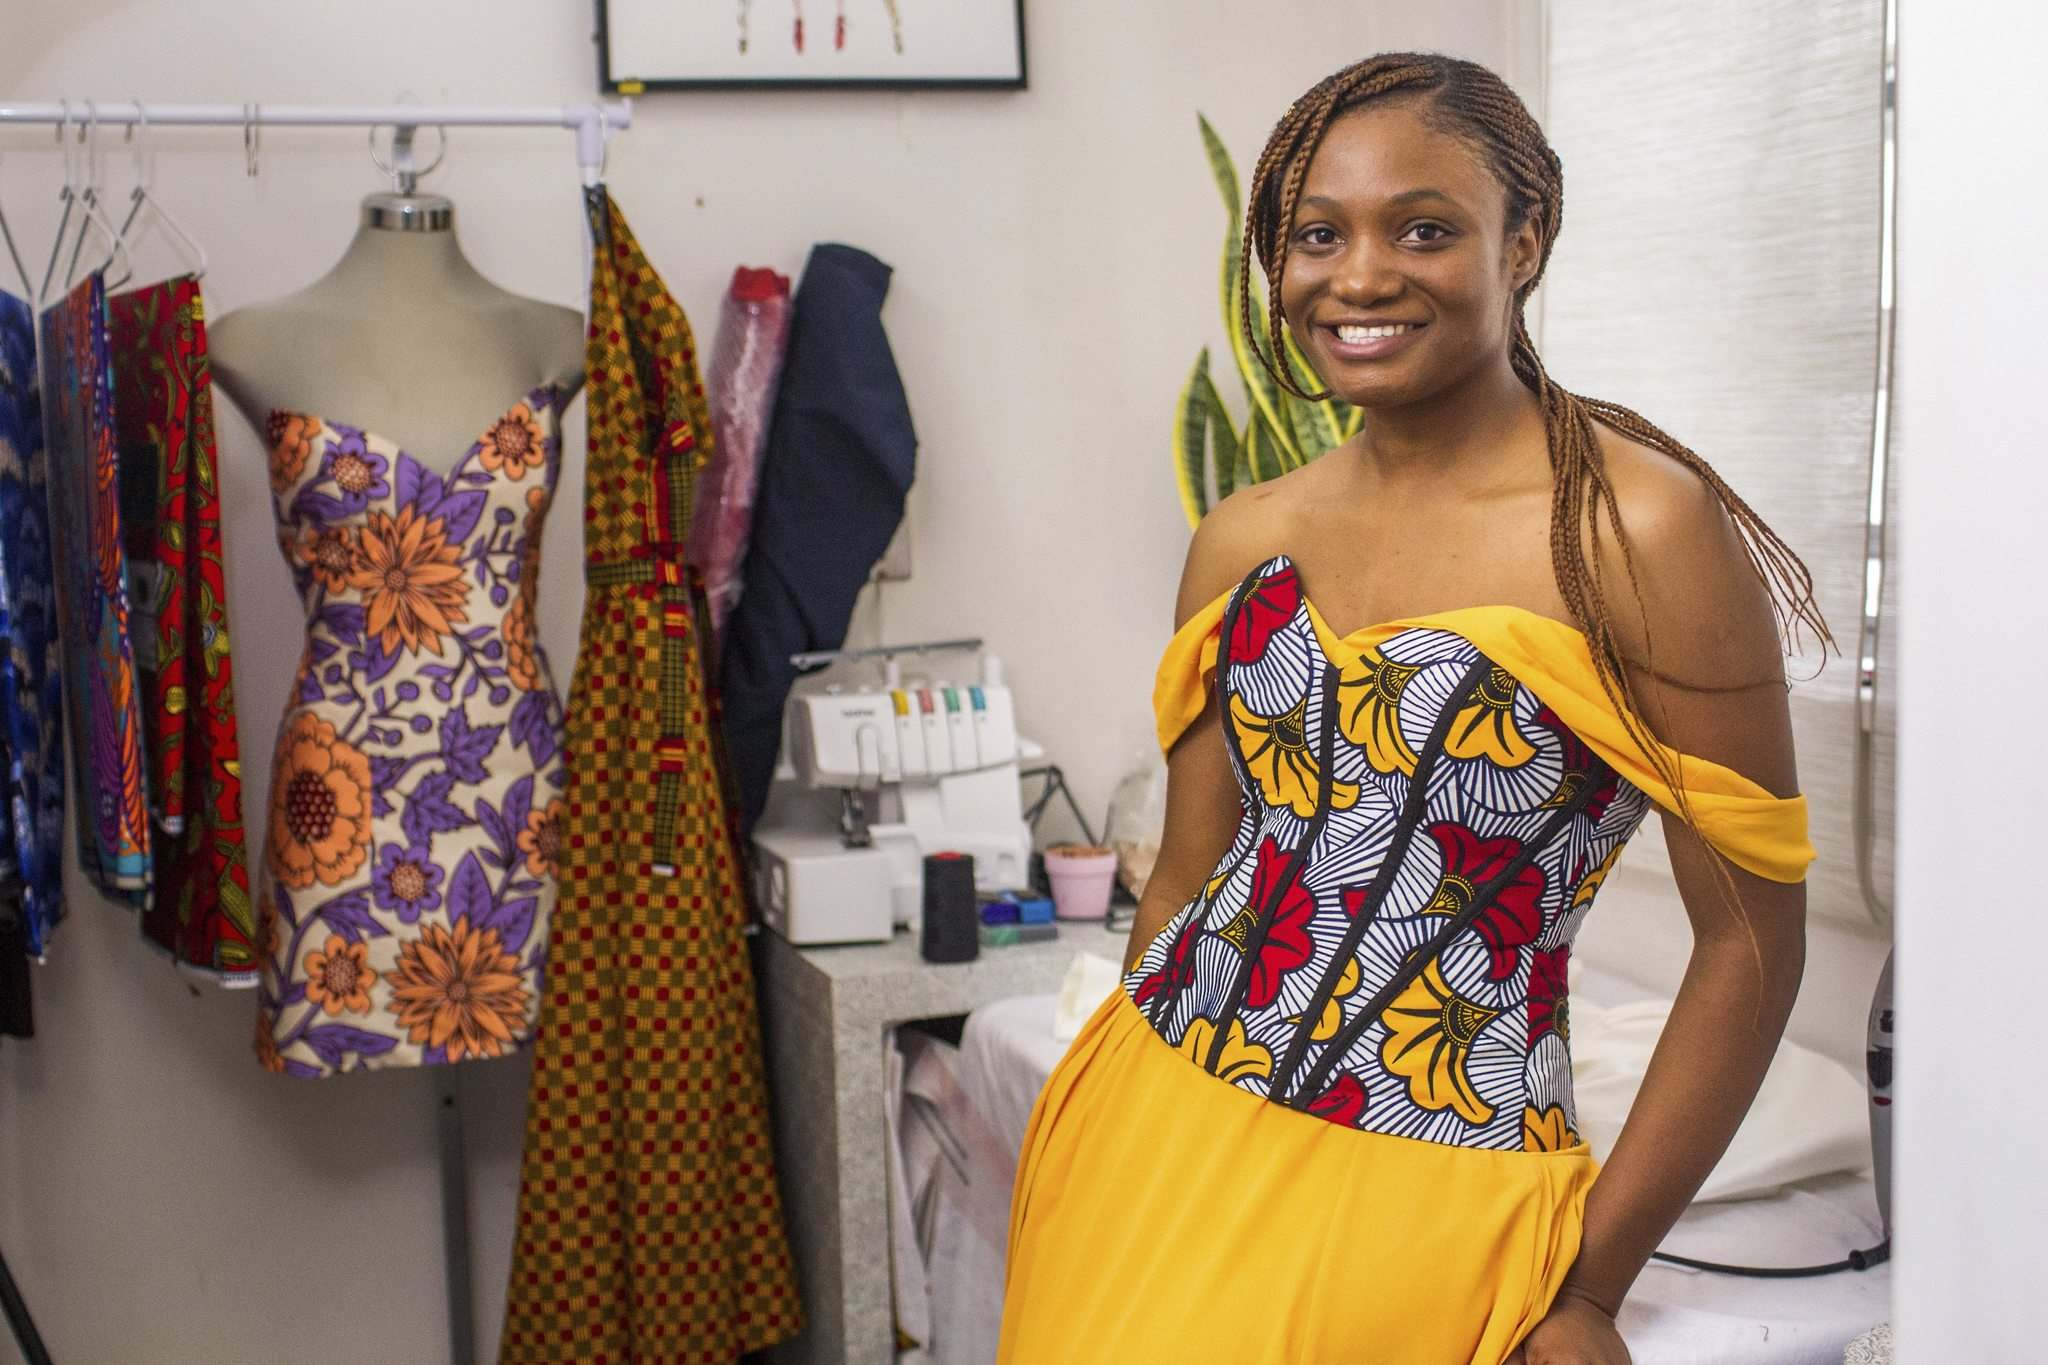 Dress Designer Hopes To Take Her Nigerian Inspired Designs Global Winnipeg Free Press